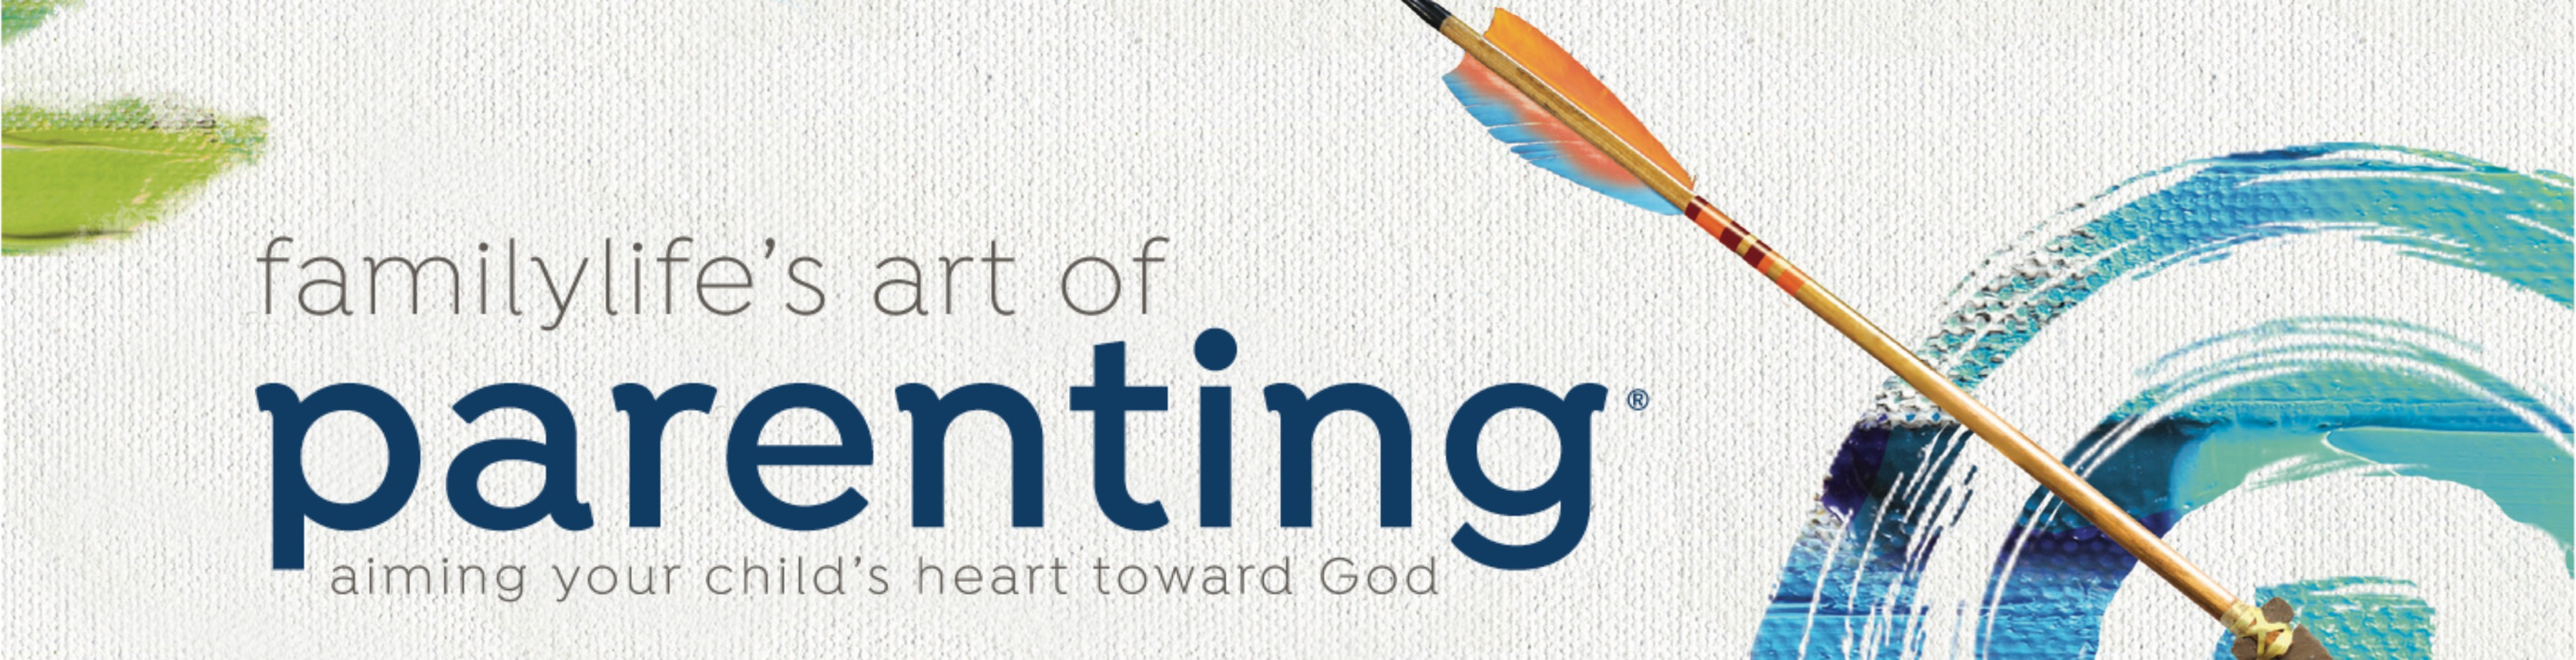 Art of Parenting sub page banner